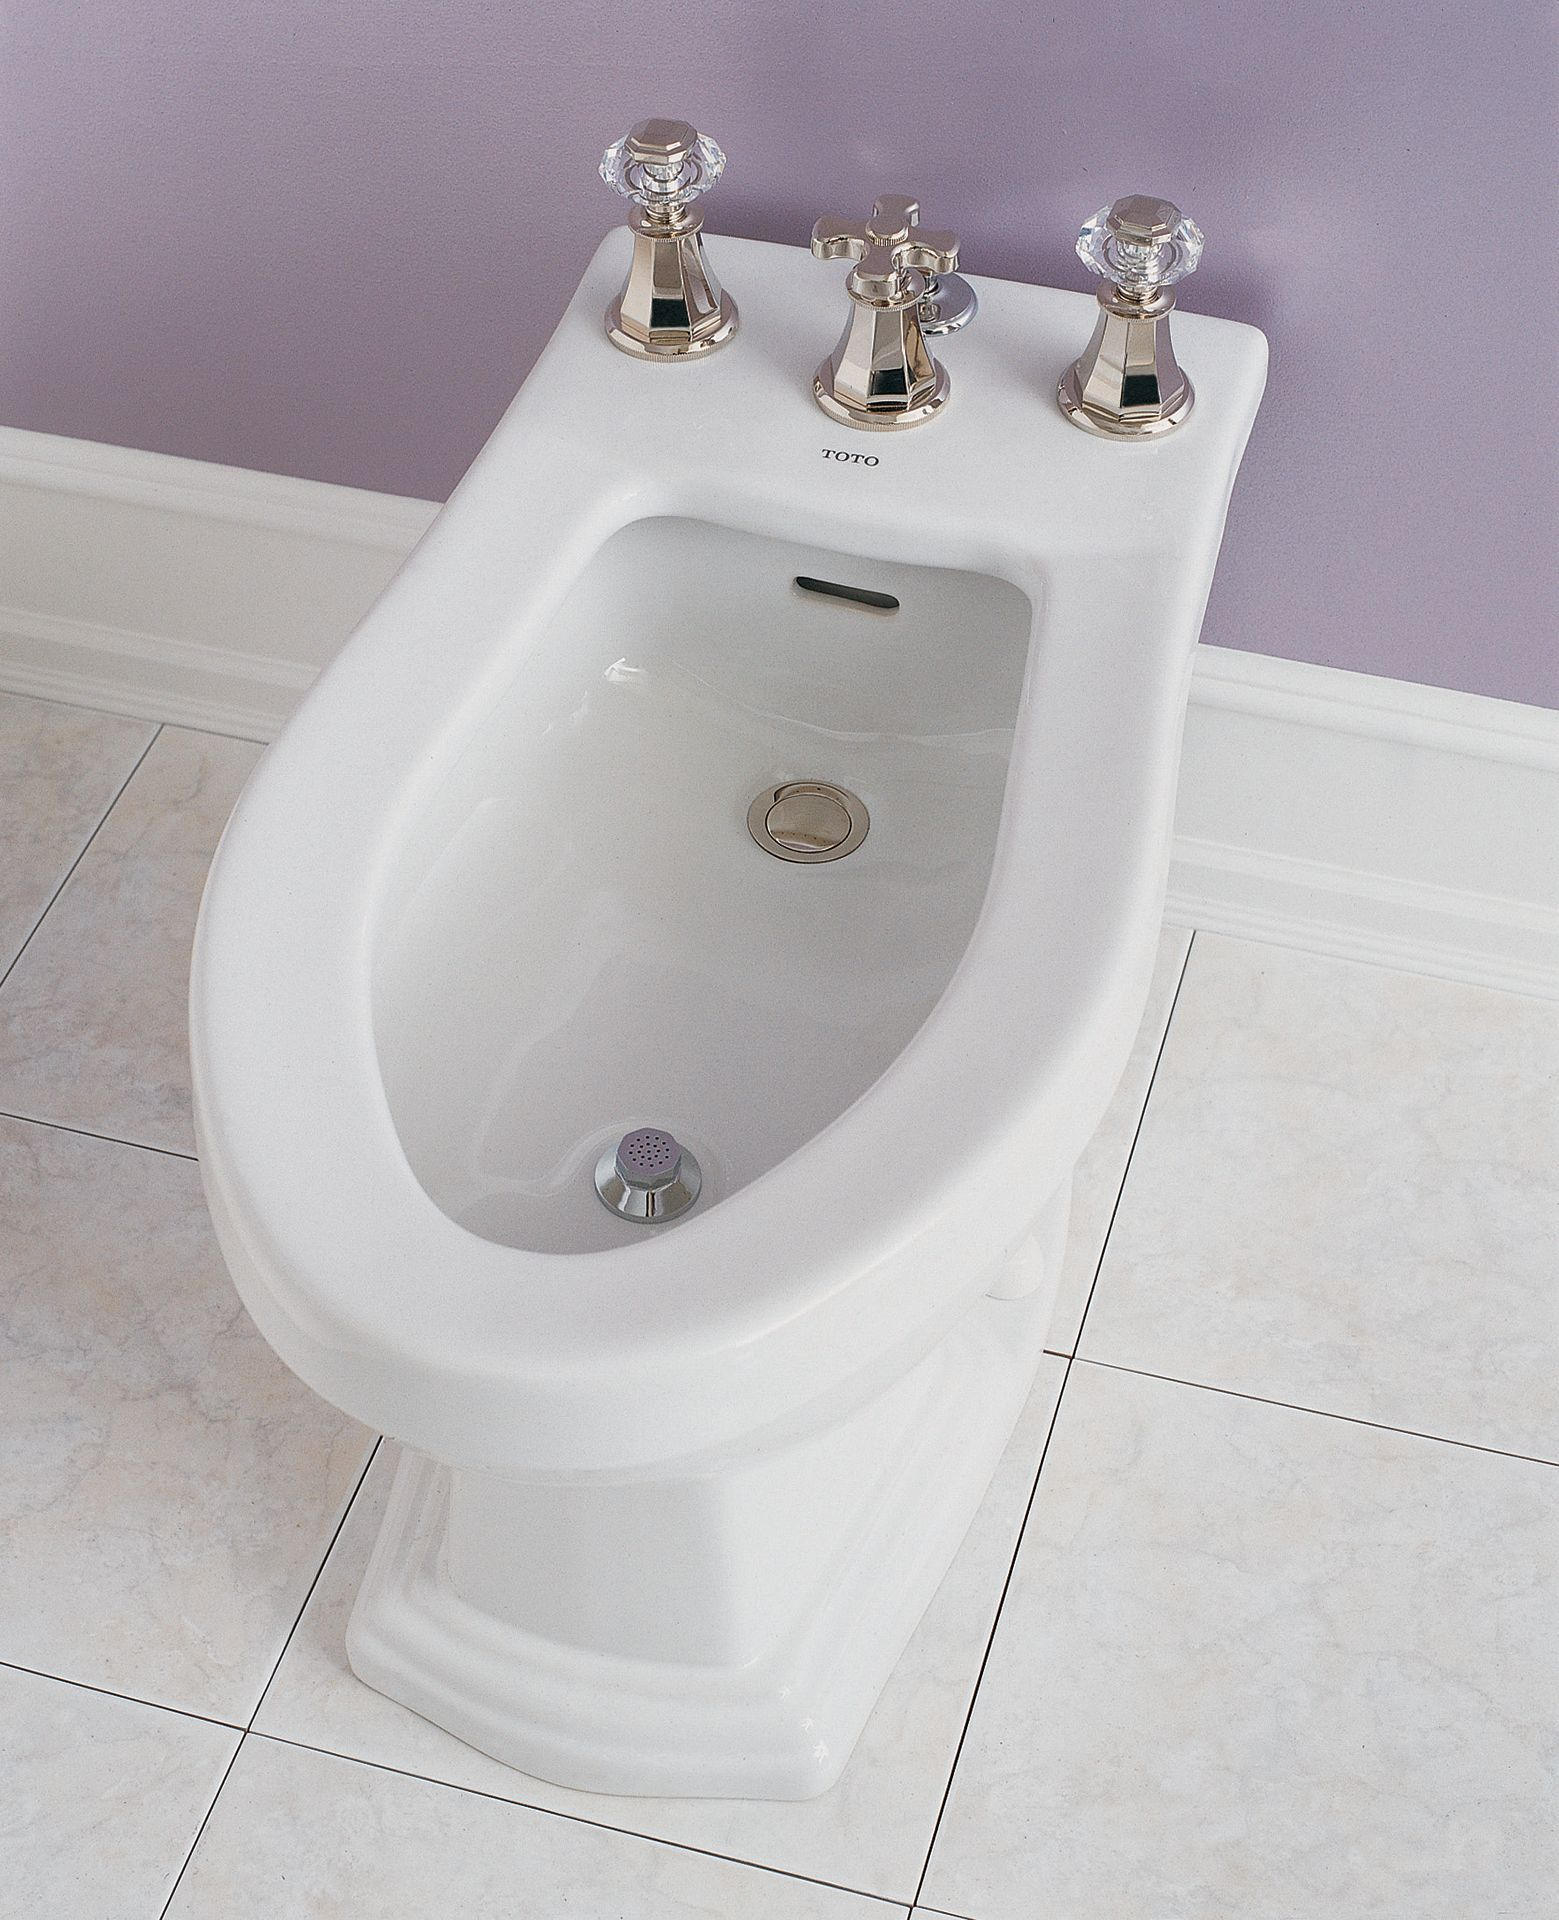 Traditionally Designed This Bidet Features Flushing Rim And Integral Overflow Which Captures Water Before It Can Spill Over Bidet Bidet Bathroom Bathroom